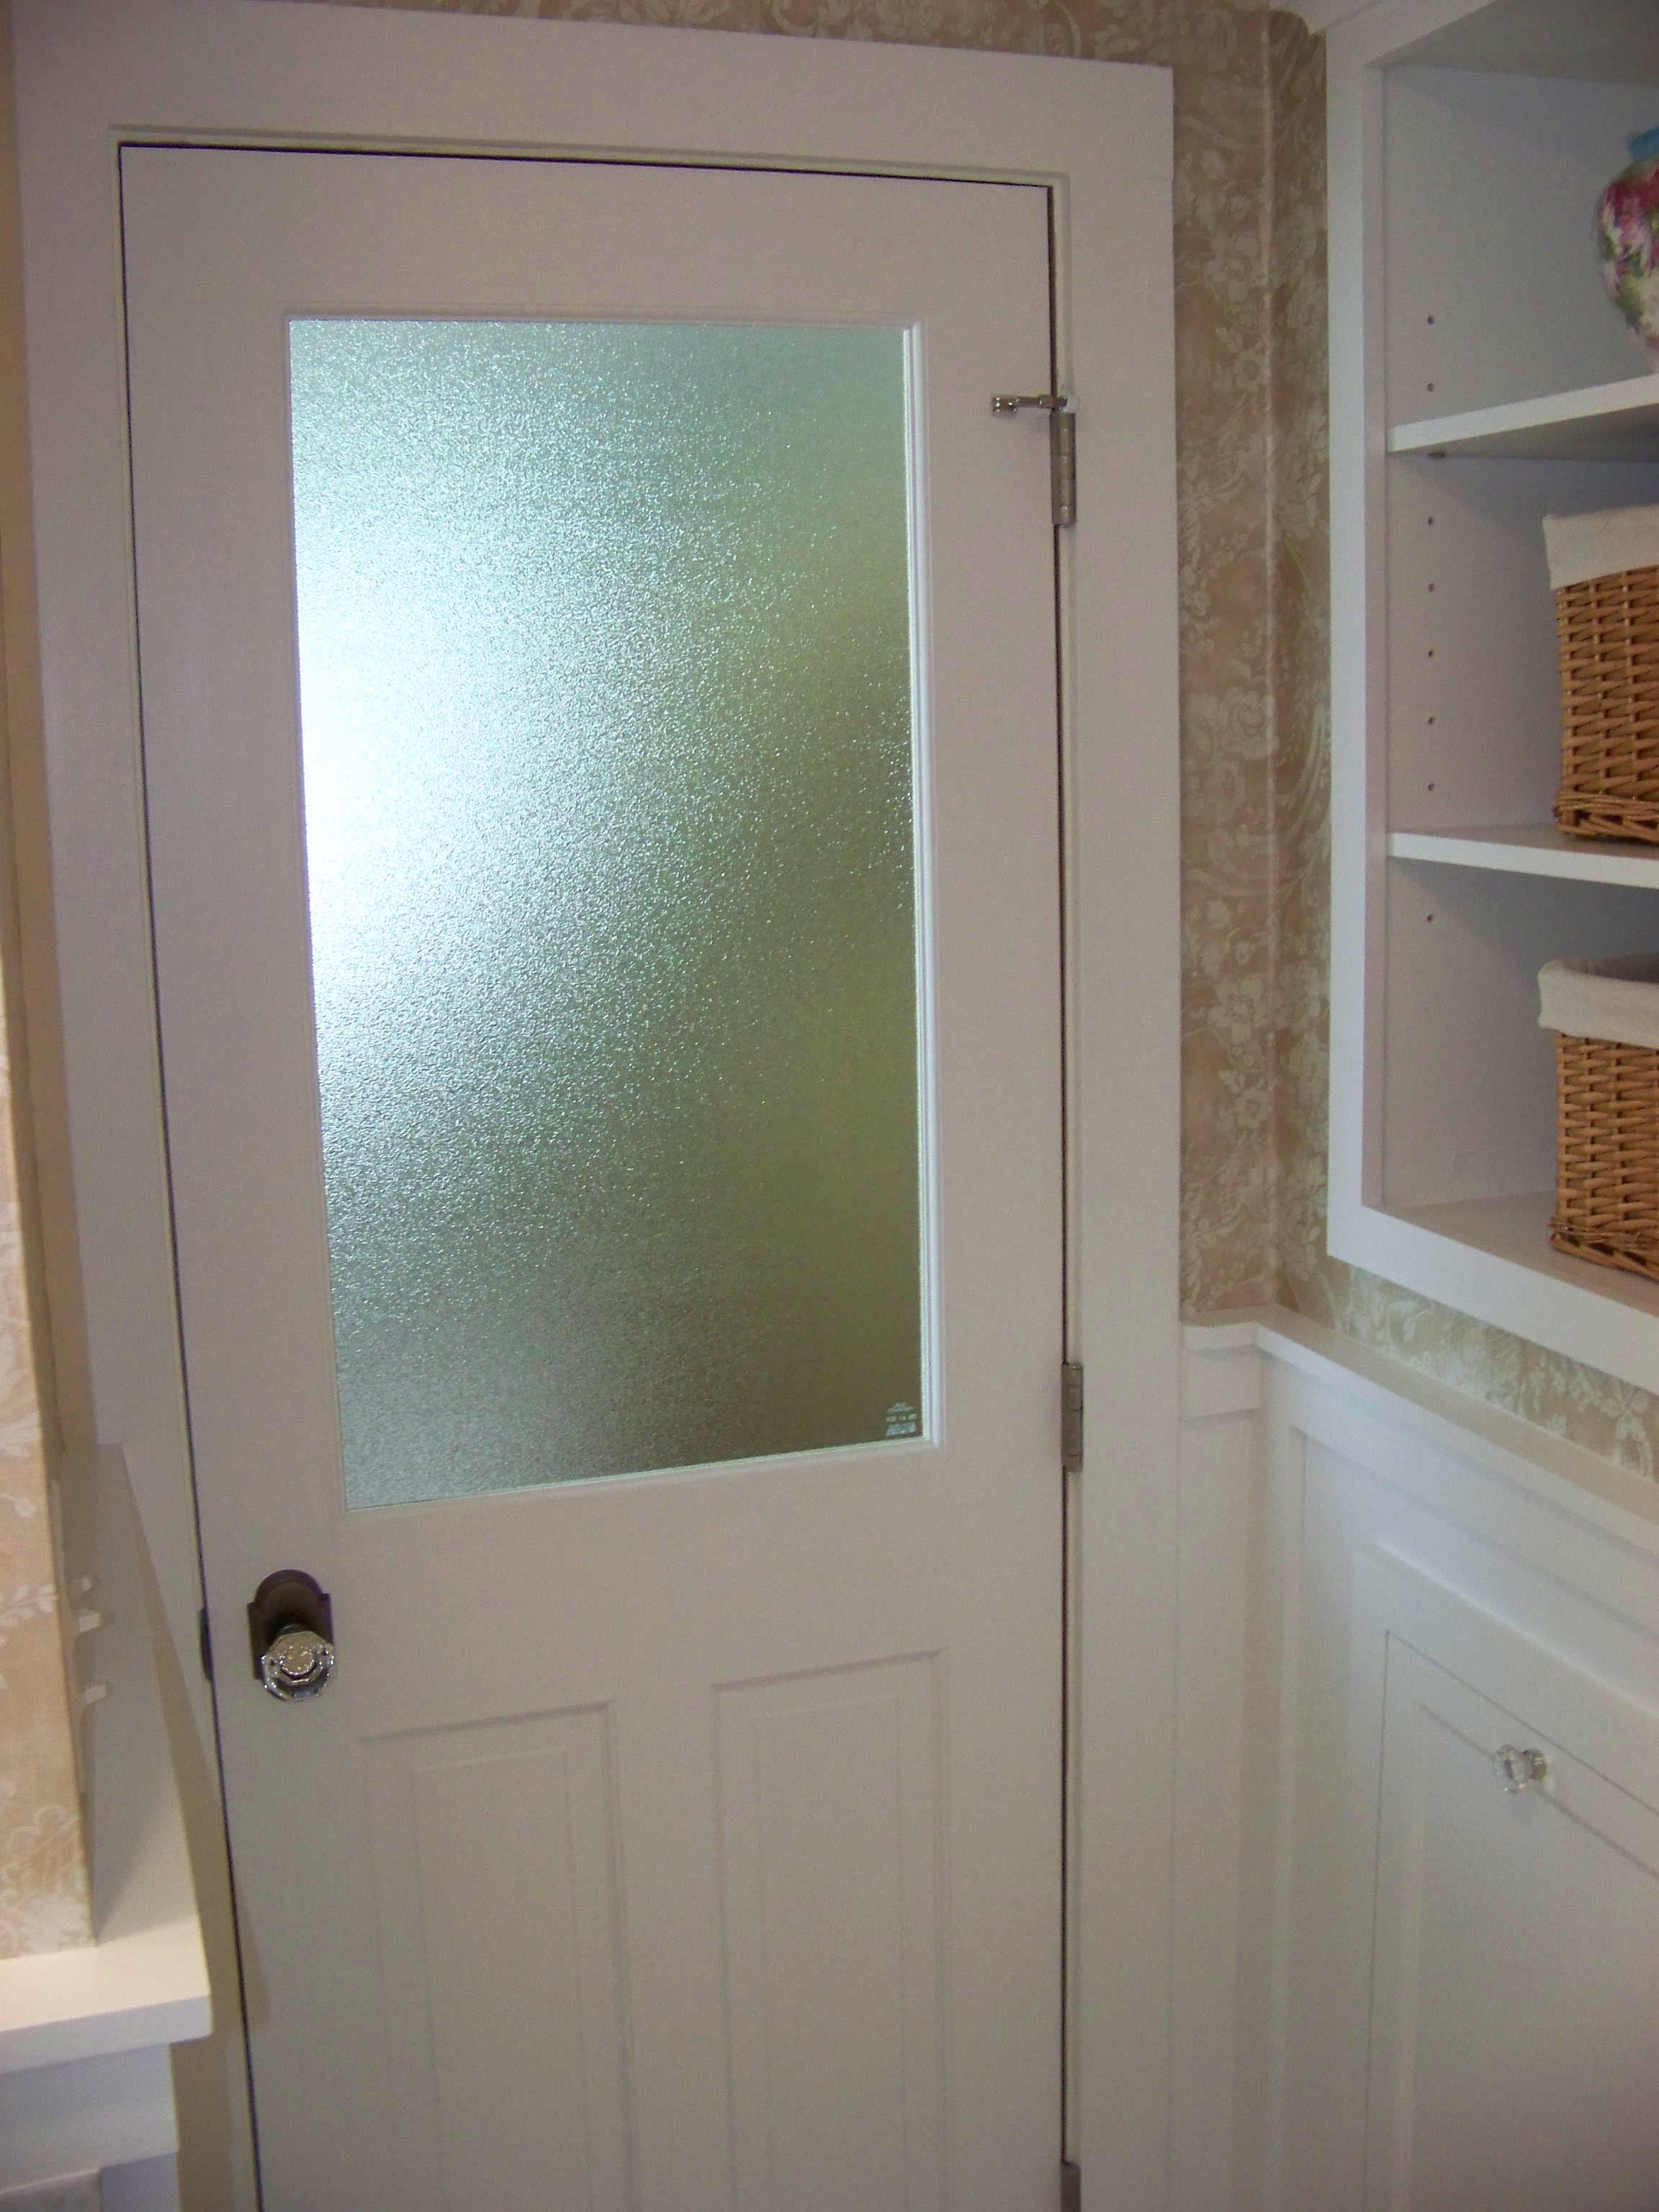 Customized Glass Panel Door Ri Kmd Custom Woodworking 401 639 8140